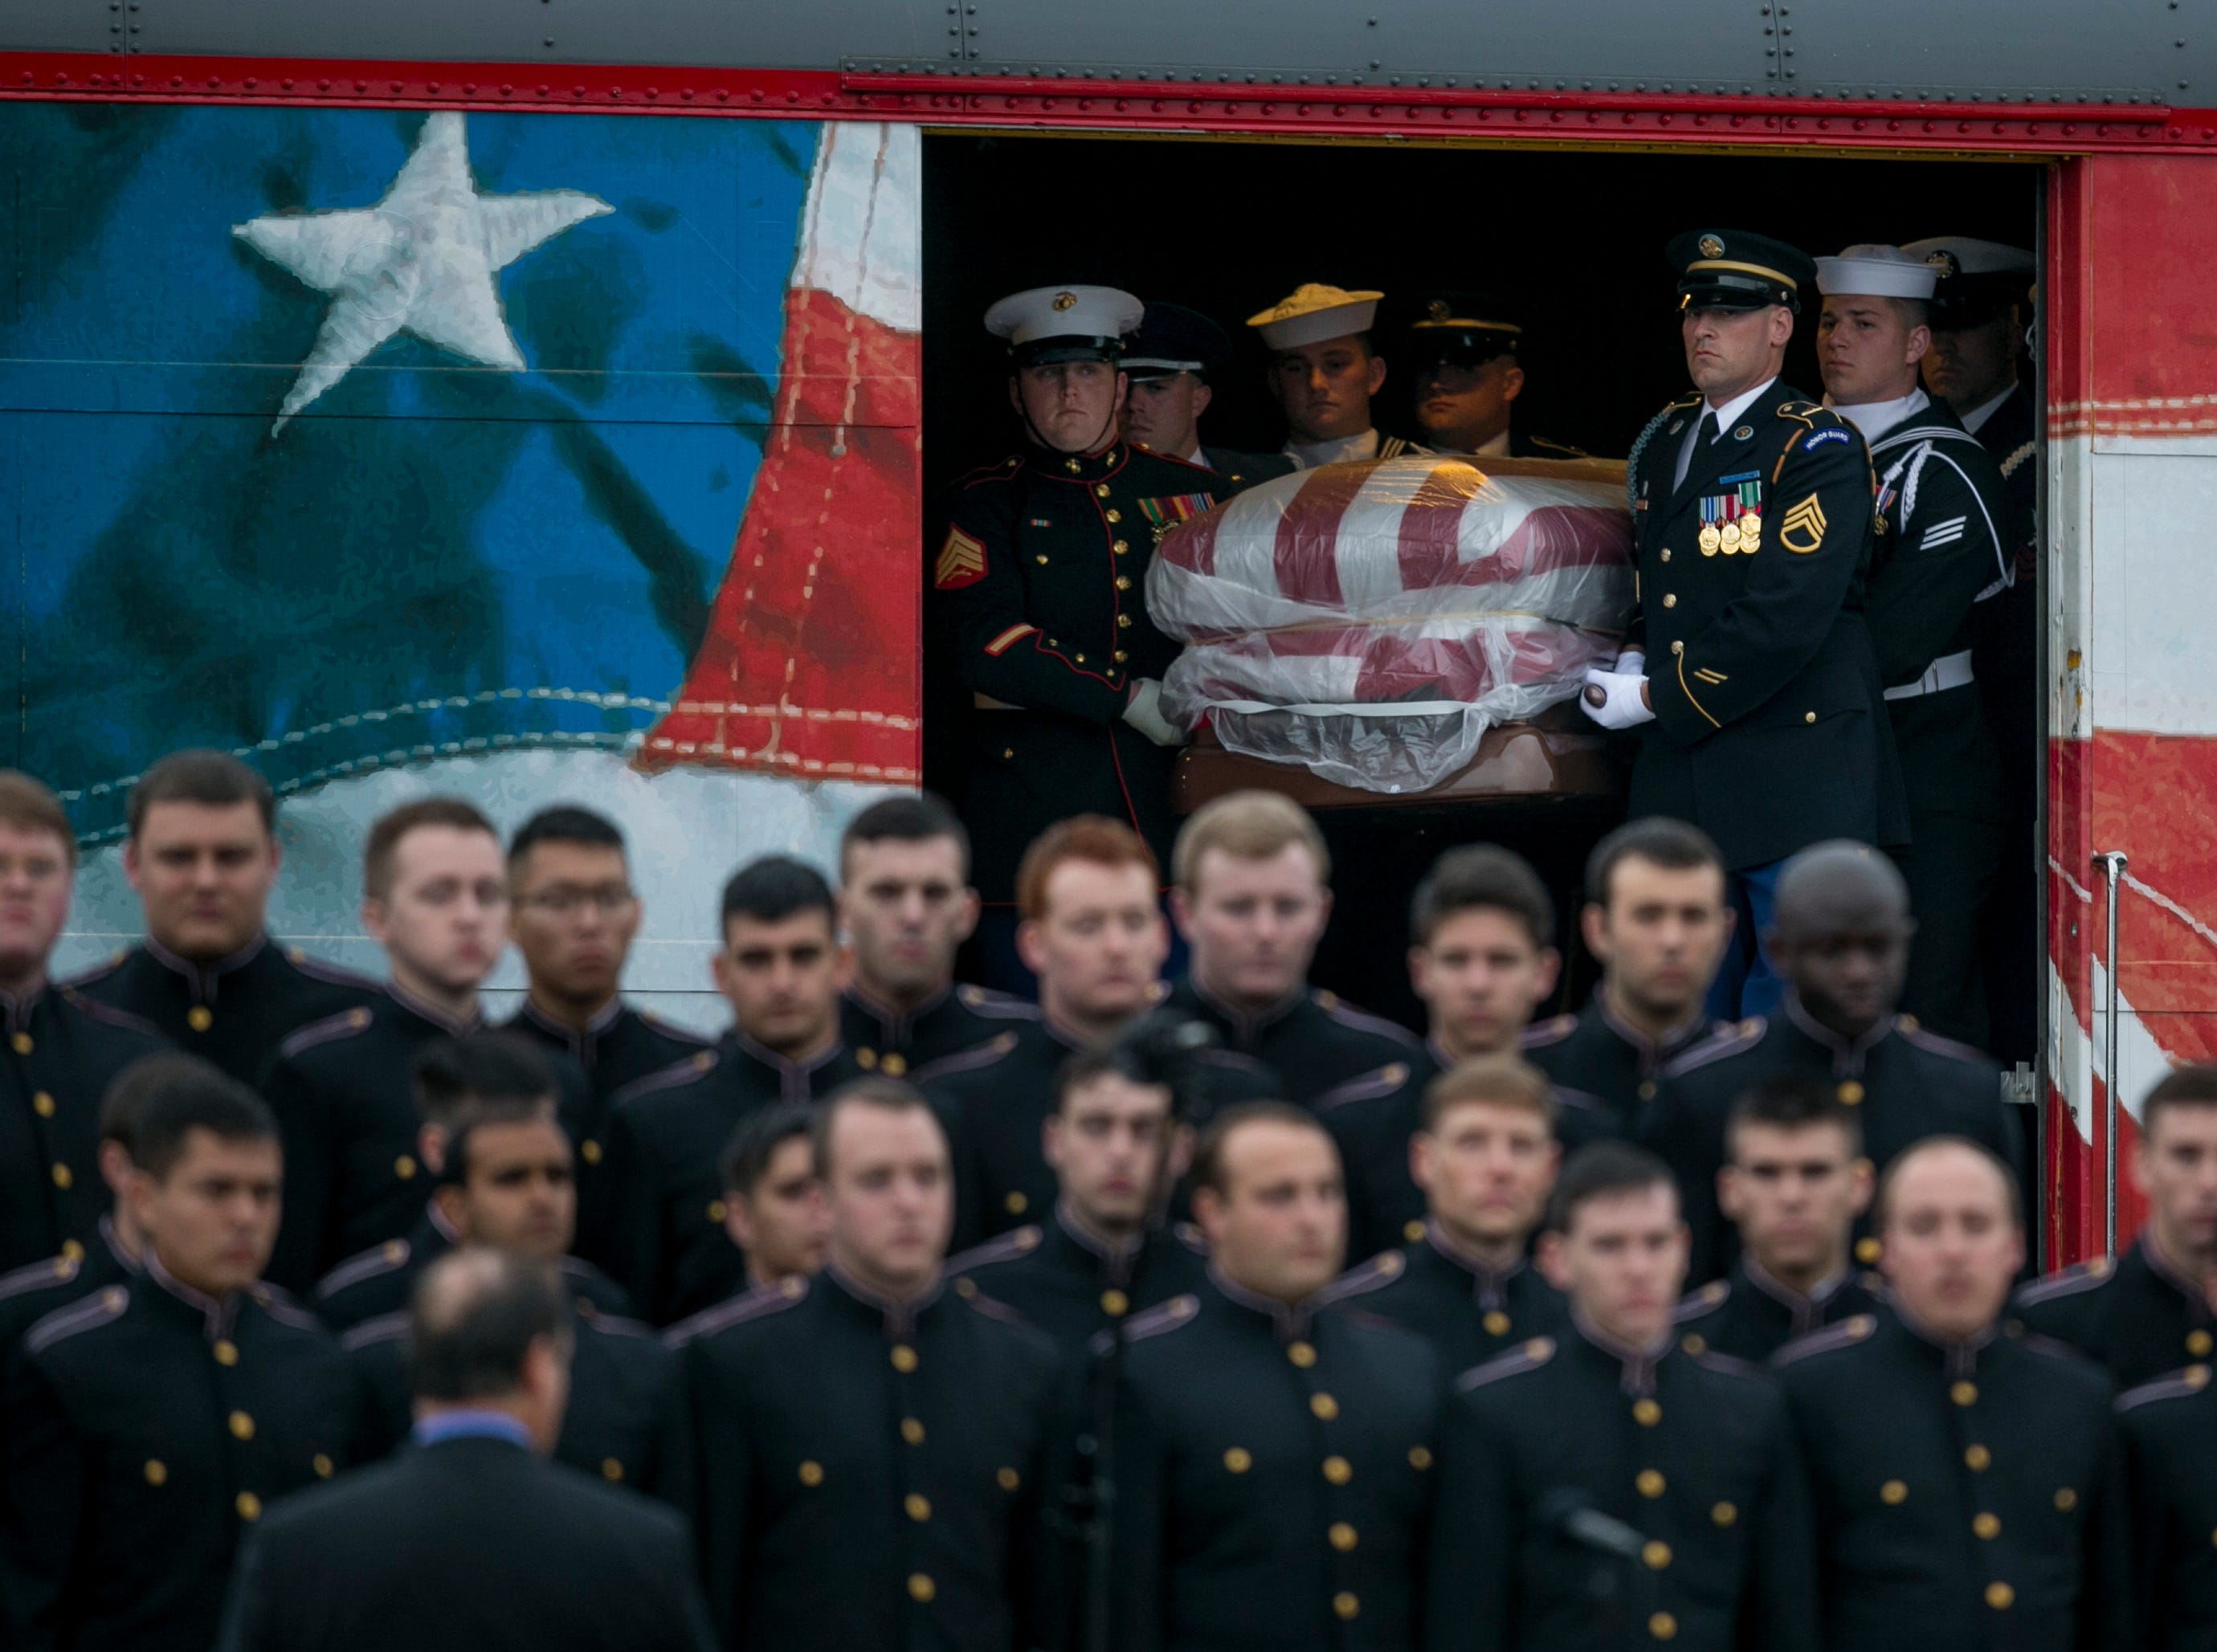 A joint military honor guard carries the casket of former President George H.W. Bush after it arrived by a presidential funeral train at Texas A&M University in College Station for burial at the George Bush Presidential Library on Thursday, Dec. 6, 2018.